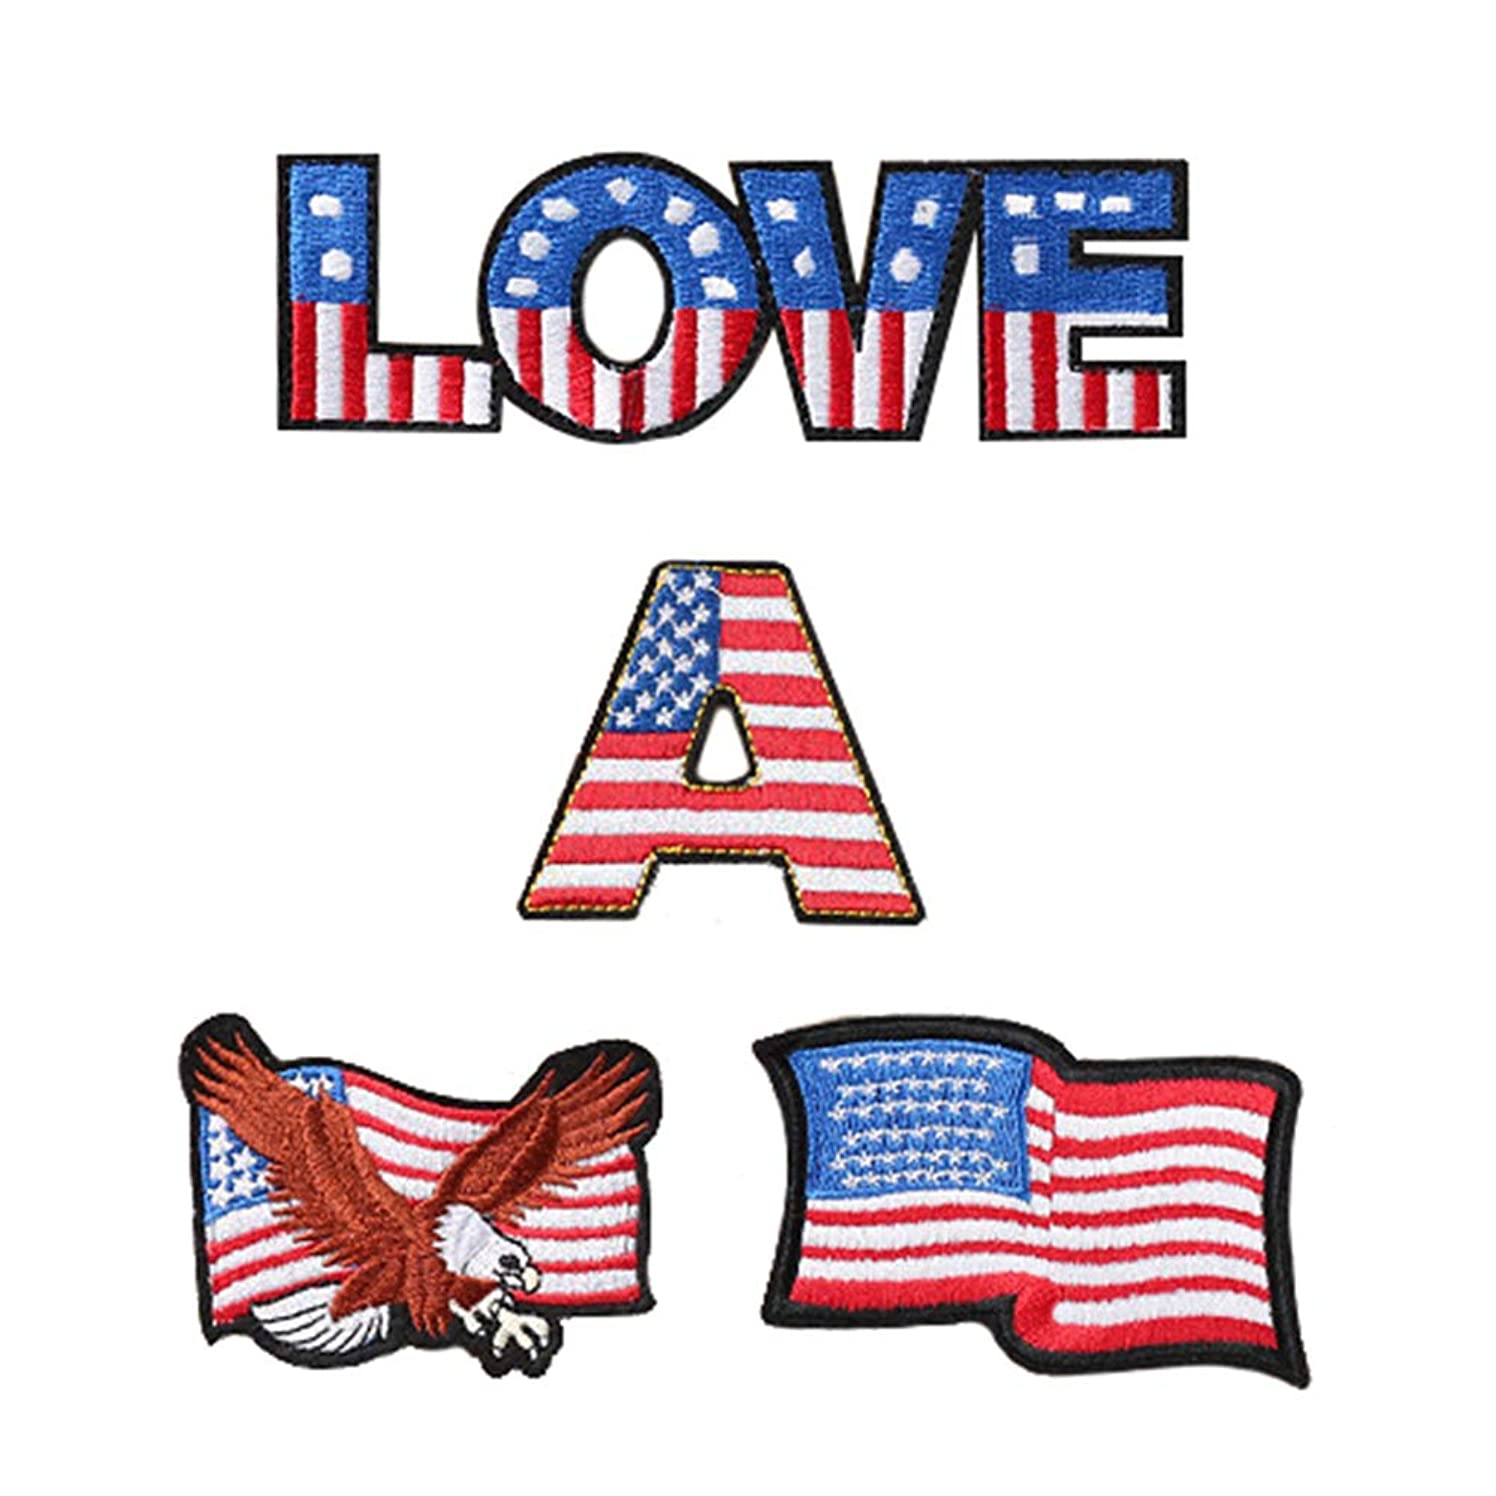 4 Pcs Love America Iron On Sew On Embroidered Patch, Applique Patch, Cool Patches for Men, Women, Boys, Girls, Kids